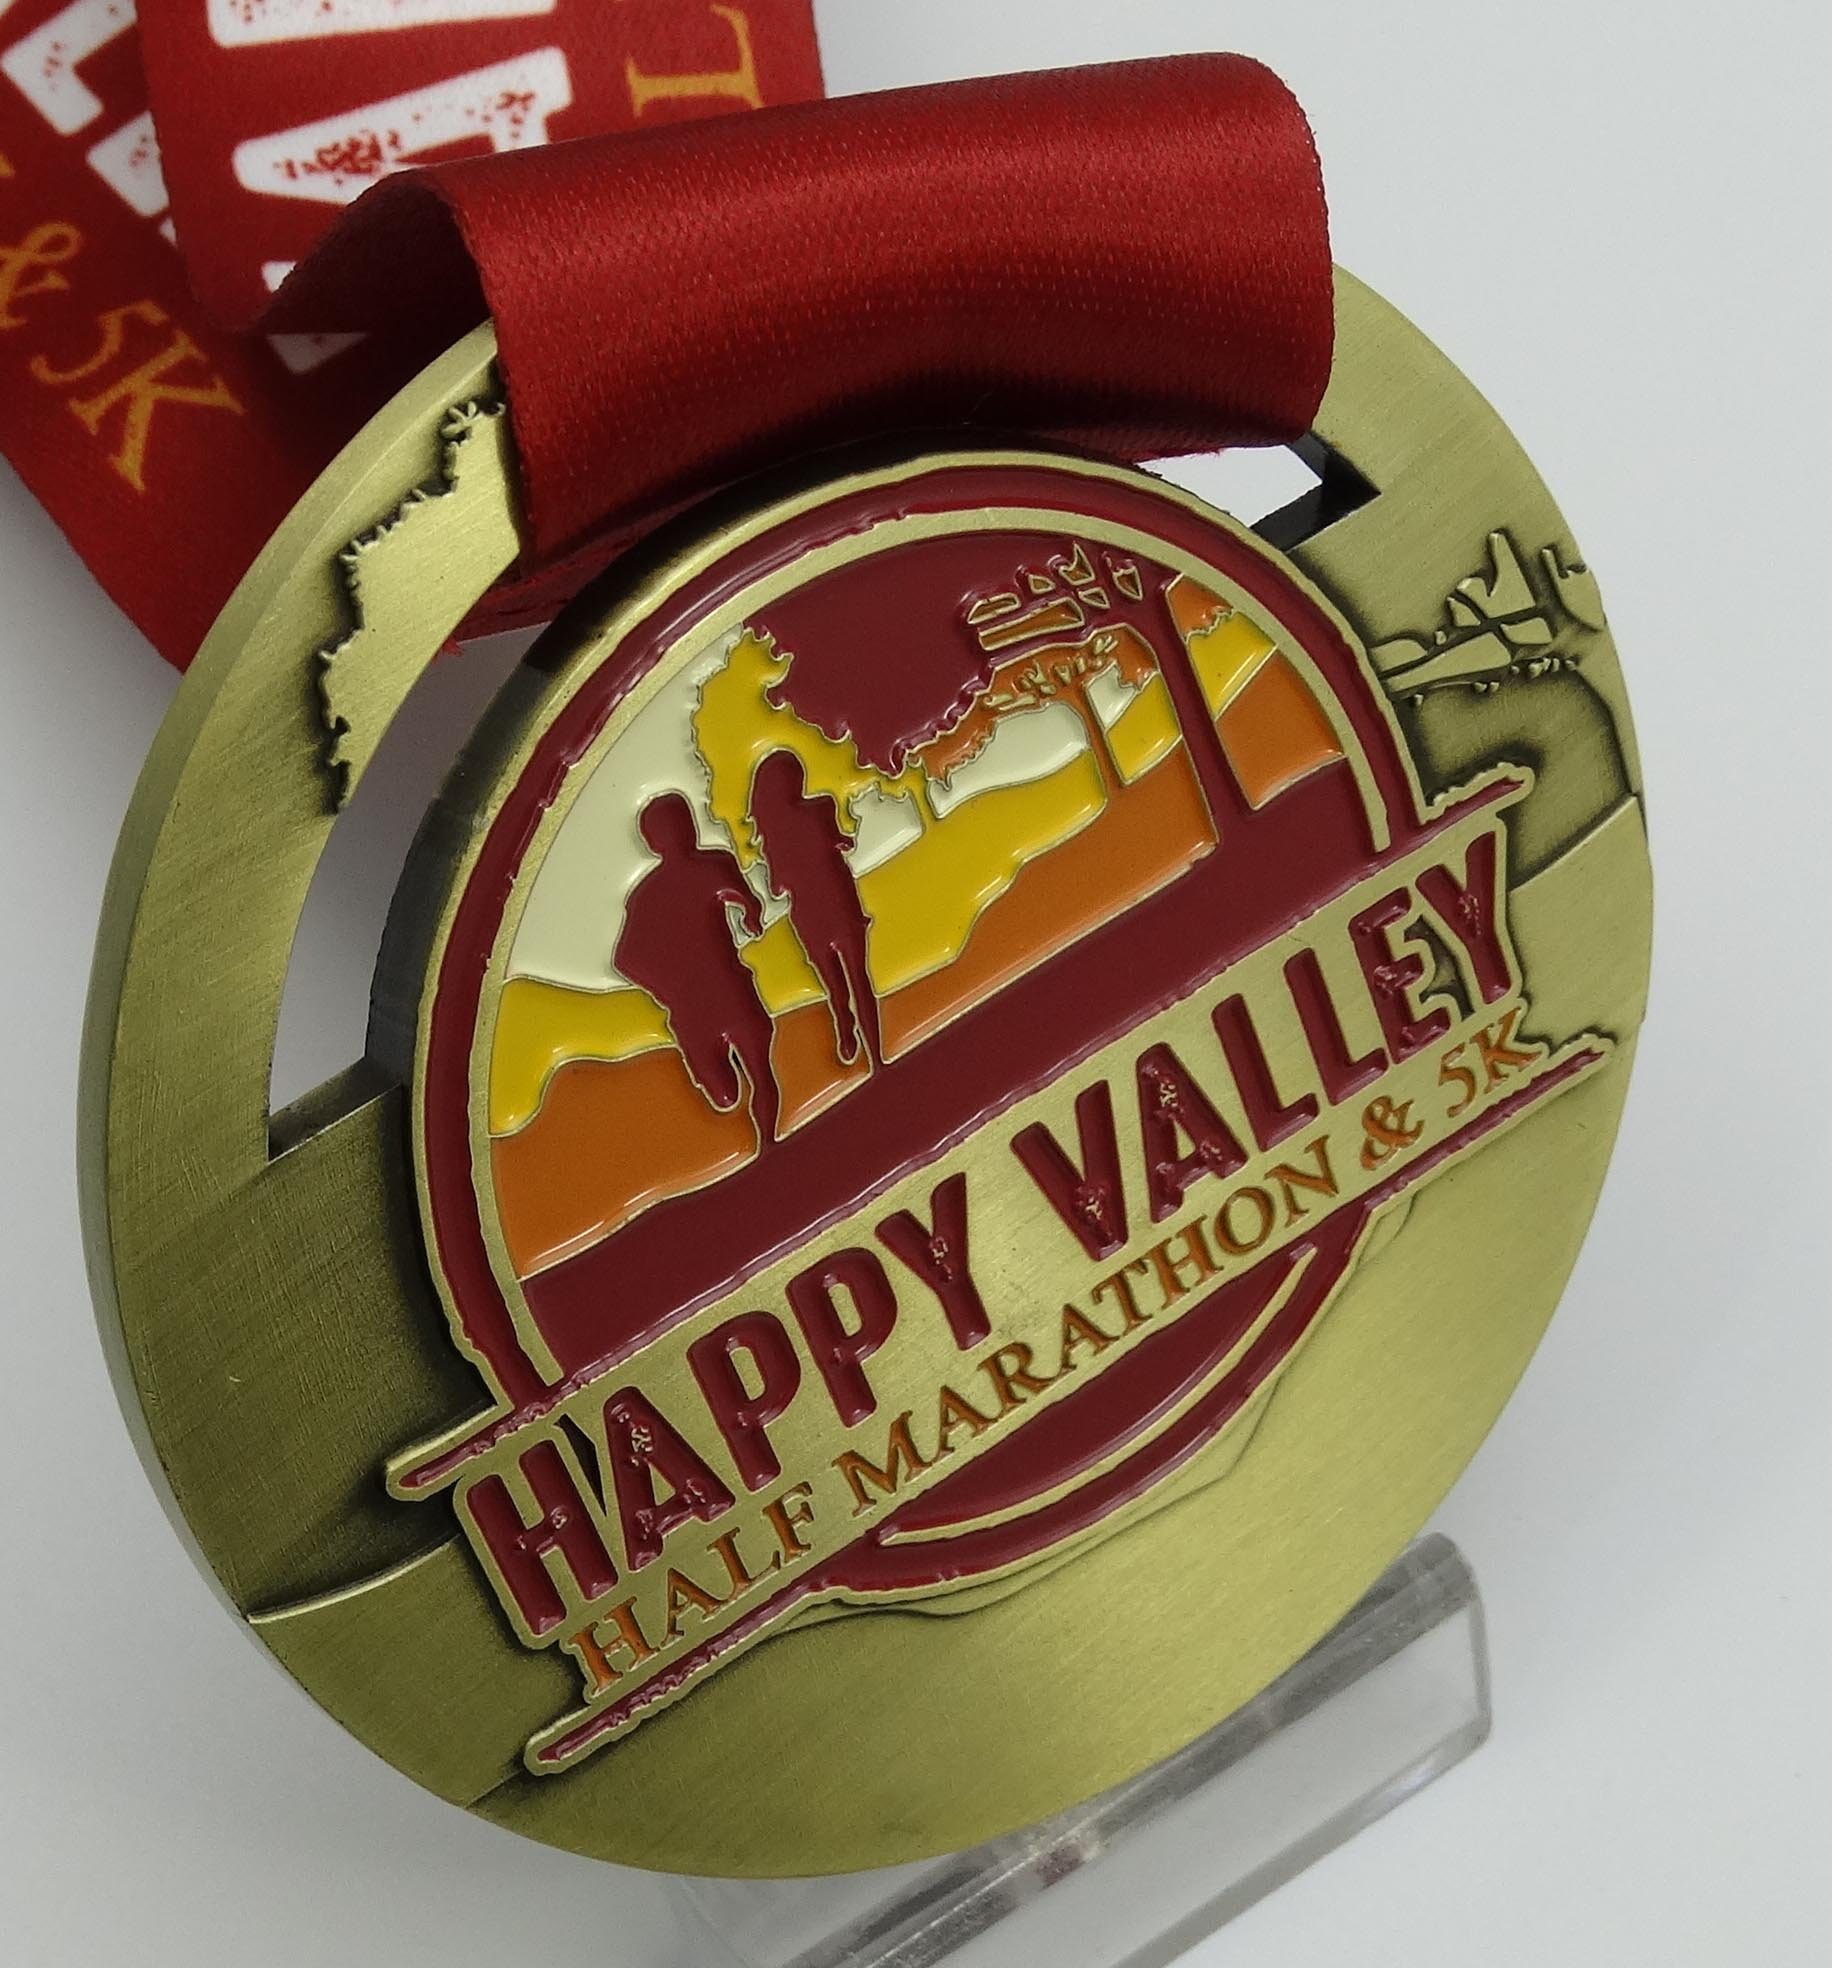 a BEAUTIFAL FINISHER'S MEDAL - All 5k and half marathon finishers can celebrate their achievement with this beautiful medal!